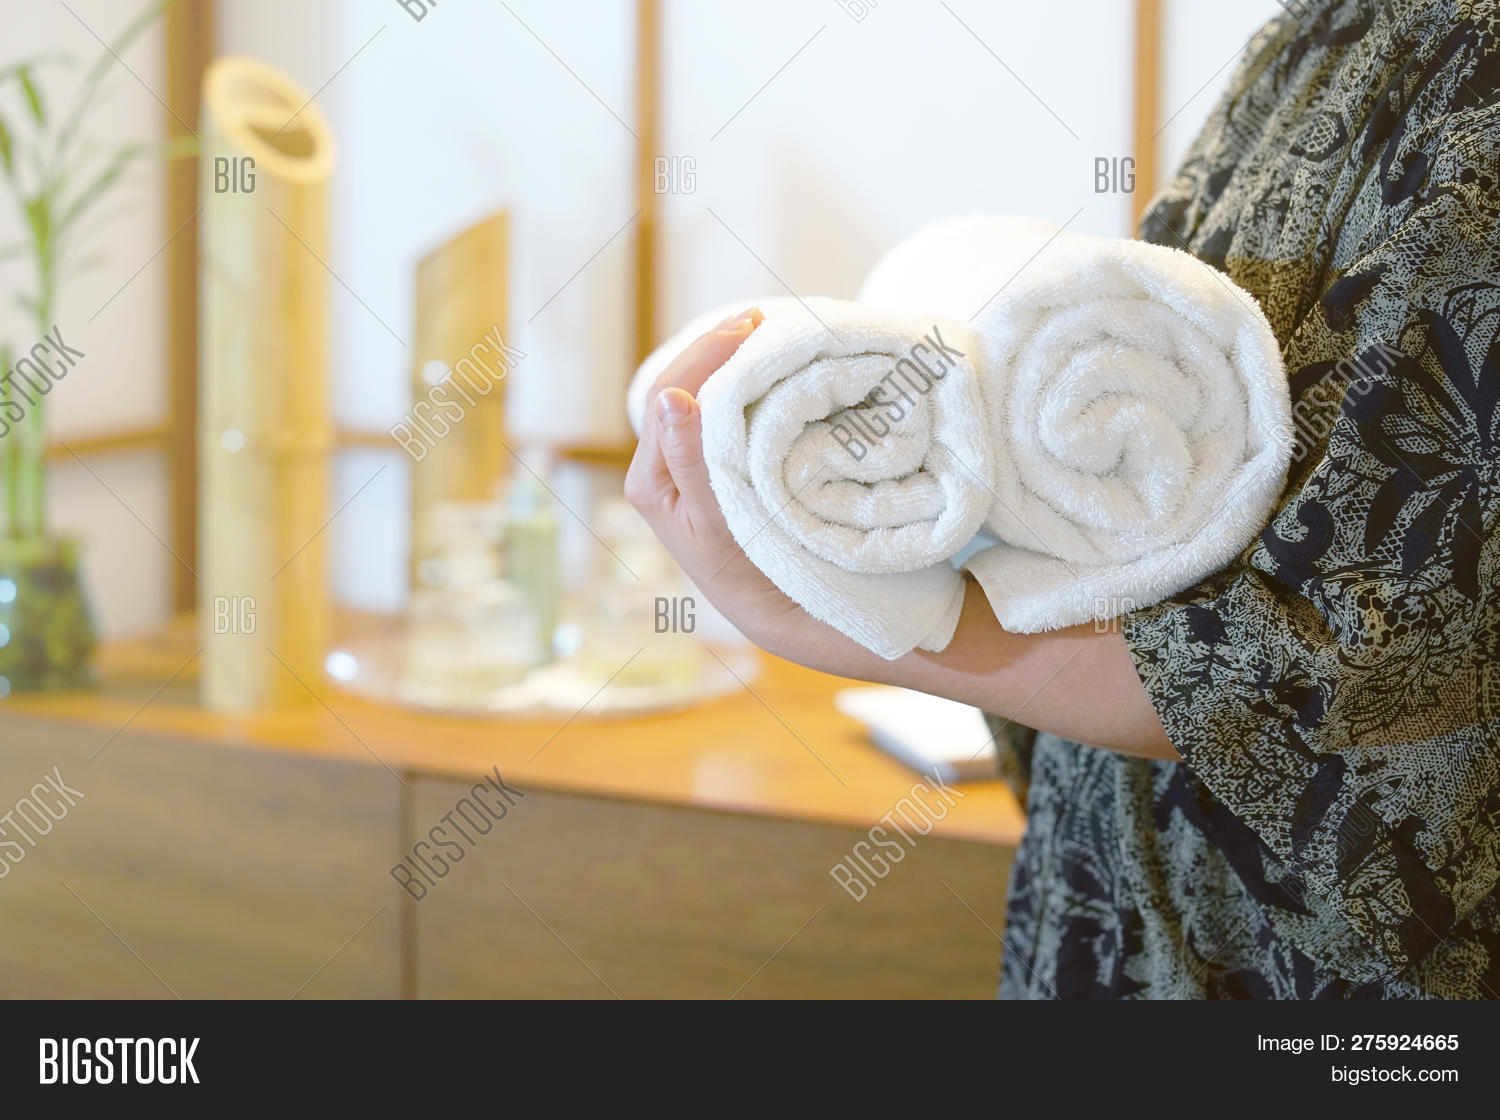 adult,background,bed,caucasian,chambermaid,cheerful,clean,cleaner,cleaning,concept,female,girl,hand,holding,hospitality,hotel,housekeeper,housekeeping,housewife,human,hygiene,laundry,luxury,maid,massage,masseuse,occupation,one,people,resort,rolled,section,service,showing,spa,staff,textile,toning,towel,welcome,white,wipe,woman,womens,worker